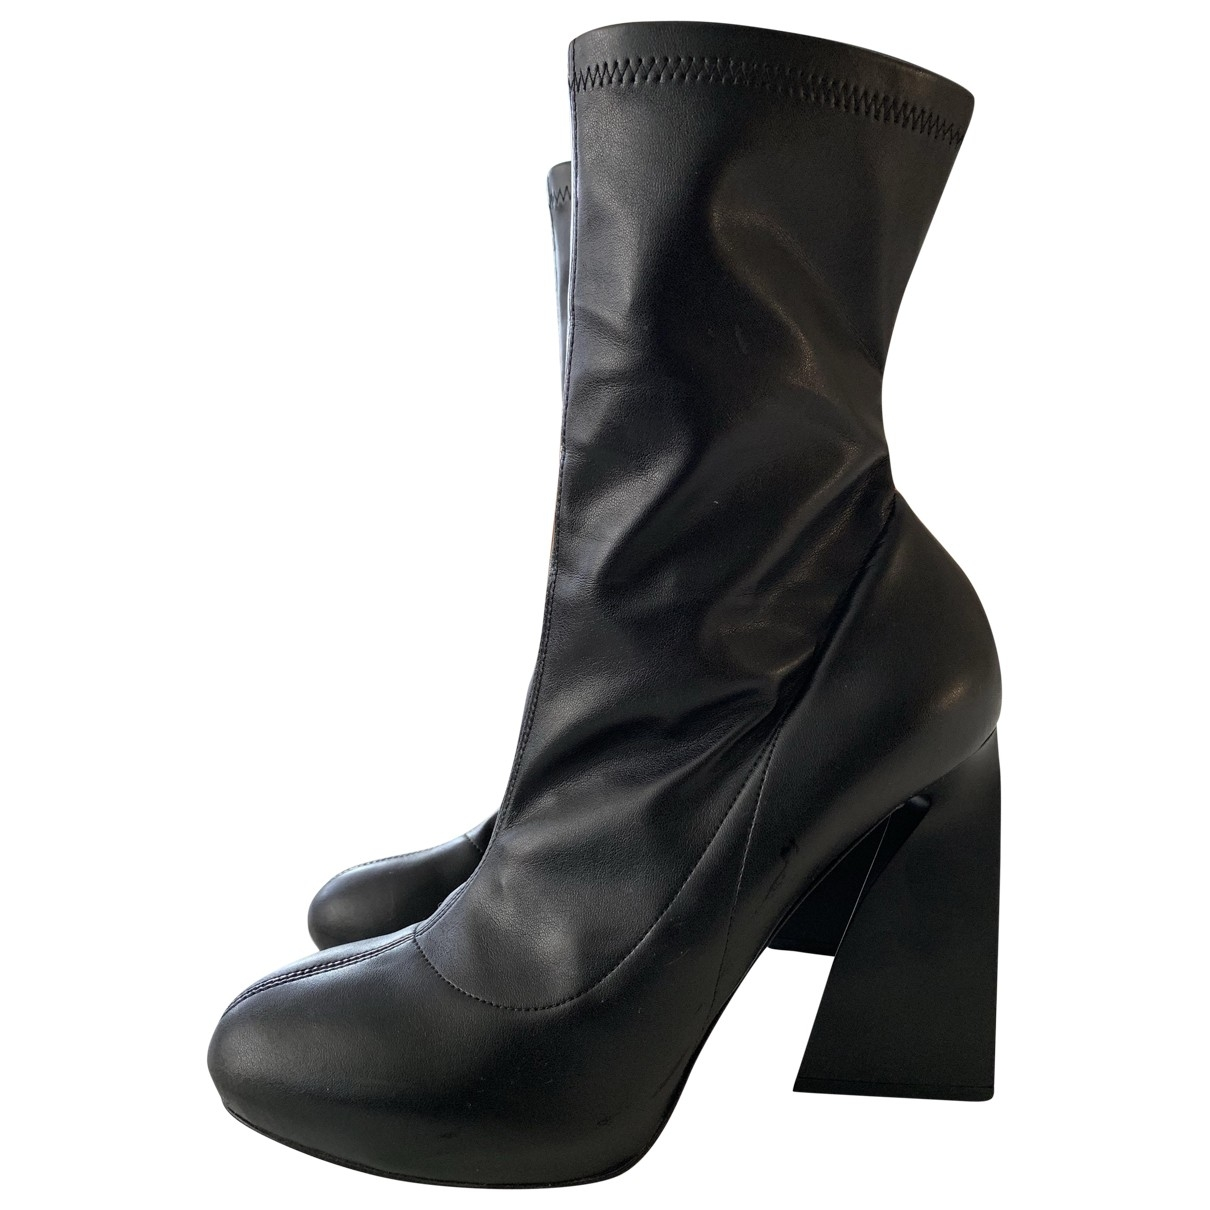 Botas de Lona Stella Mccartney